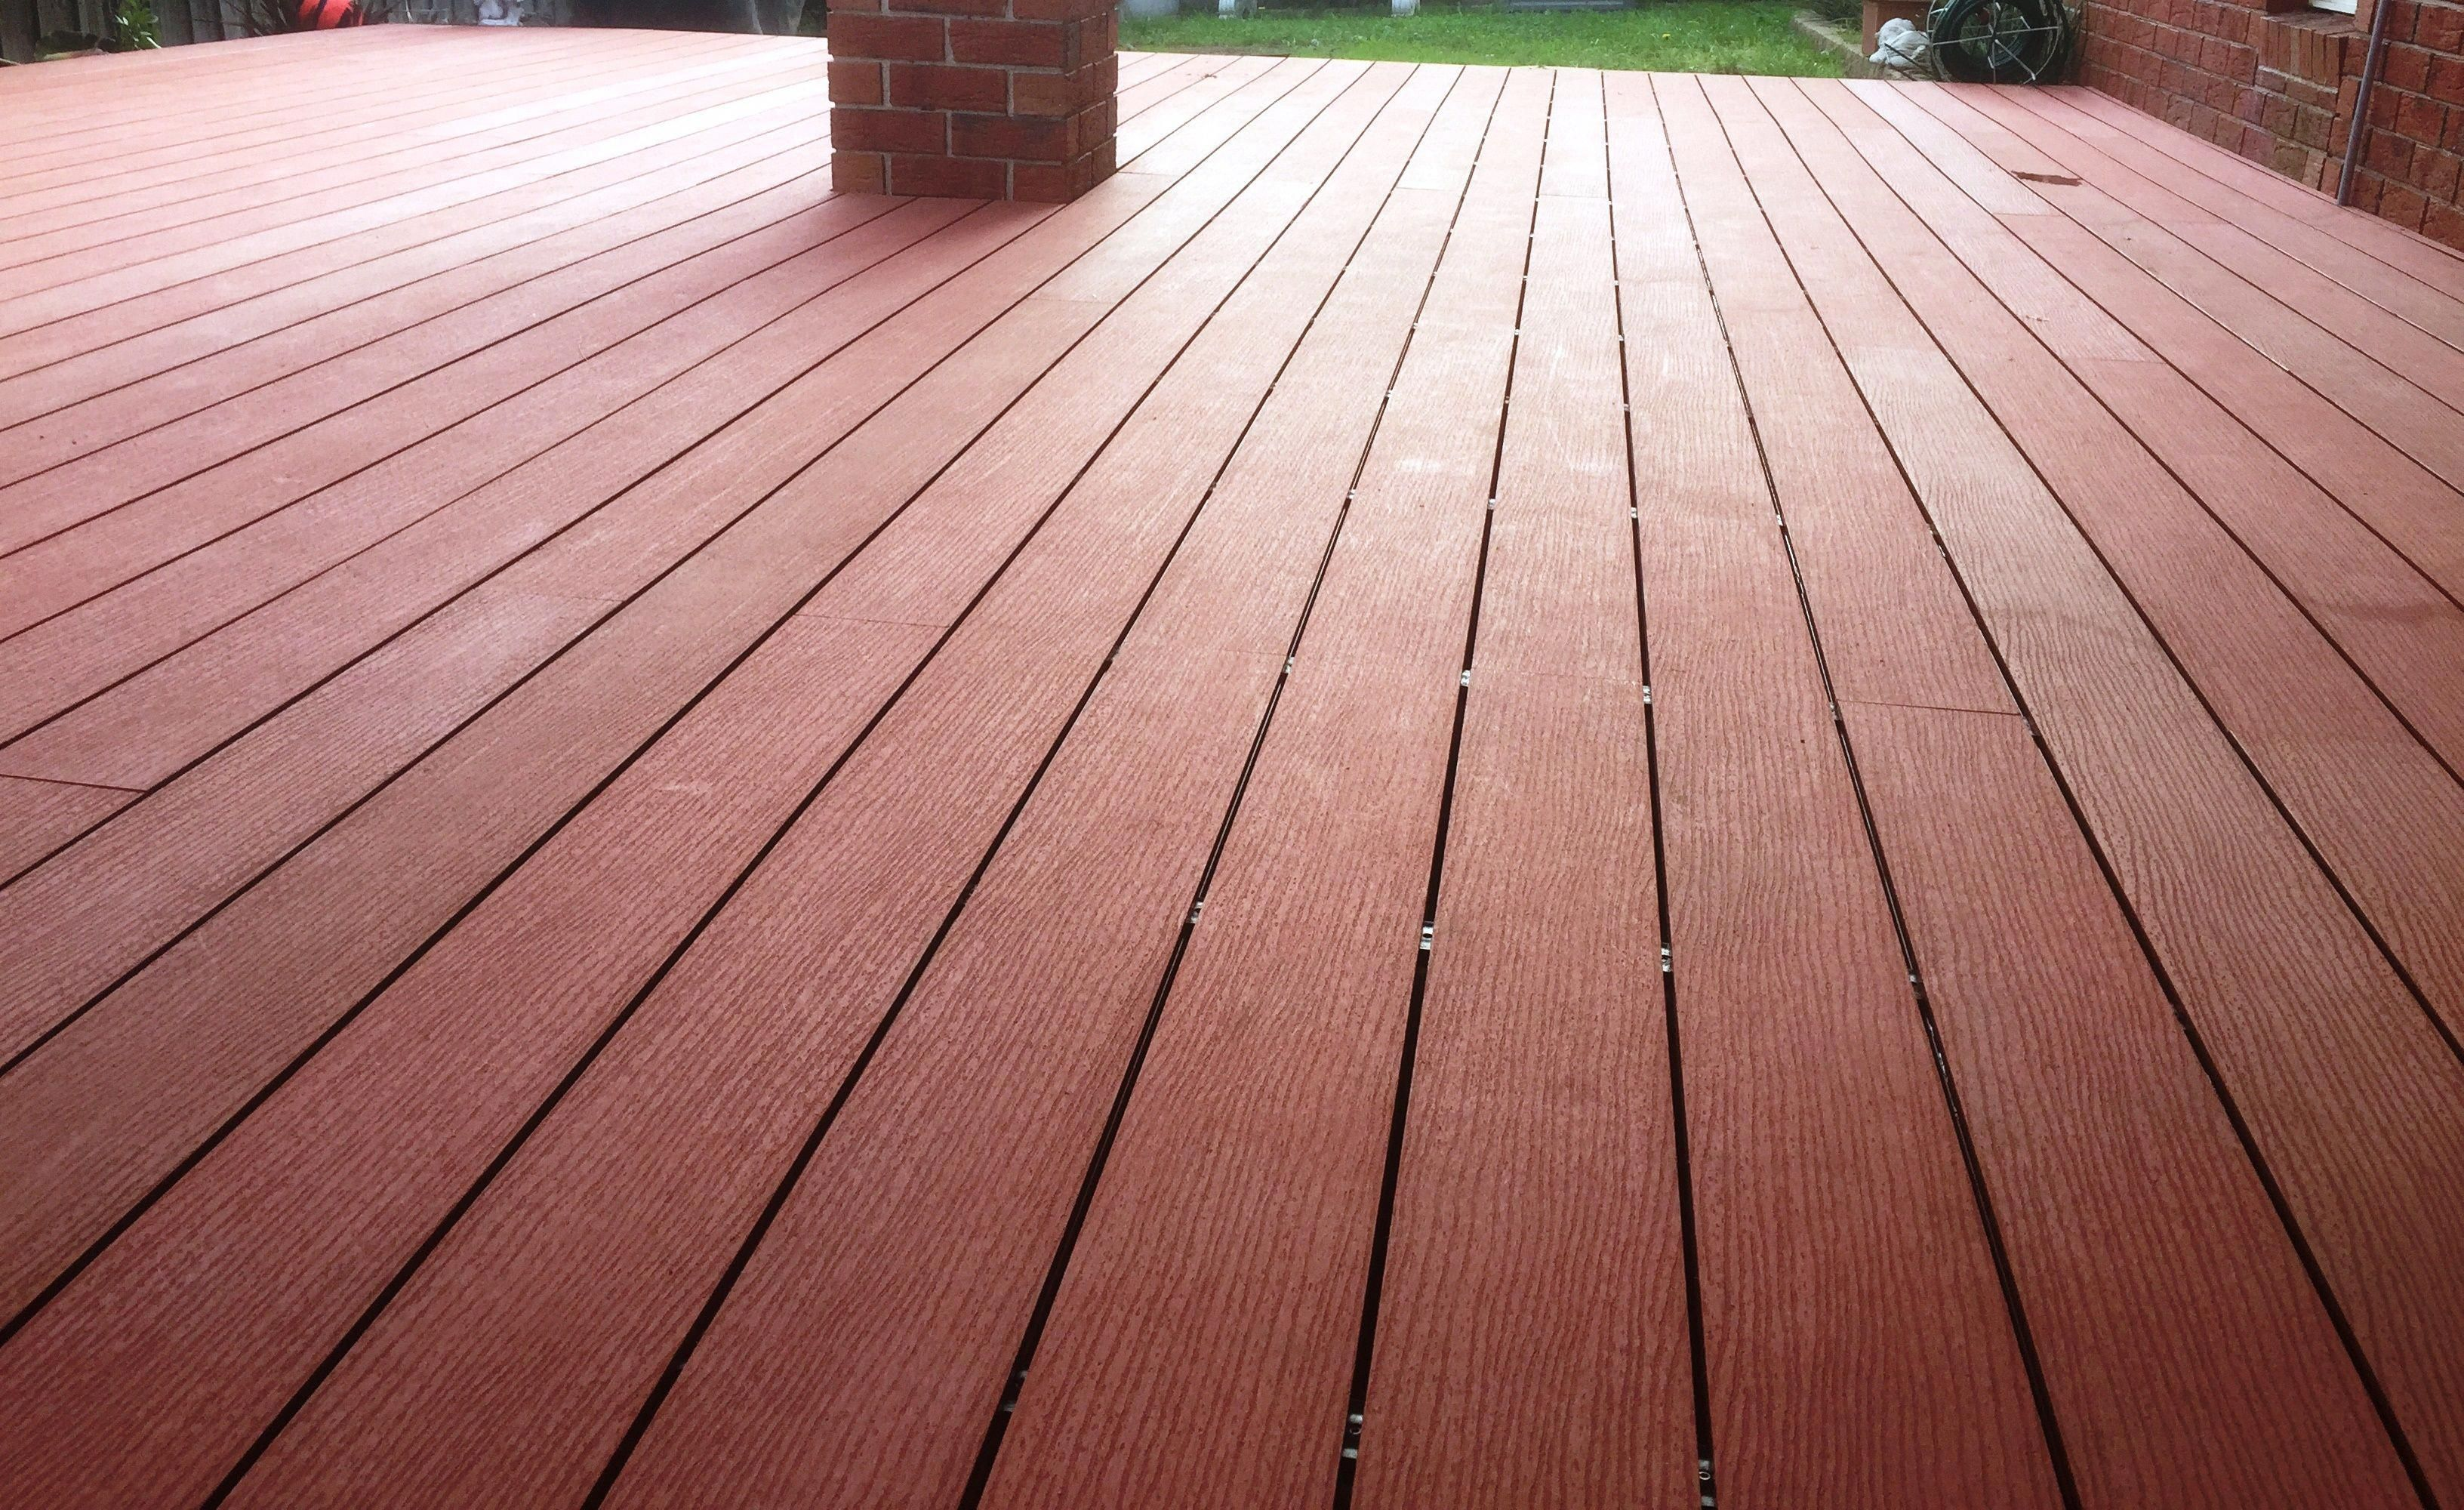 Composite Deck 12 Ft Composite Decking Prices With Images Composite Decking Diy Deck Outdoor Composite Decking